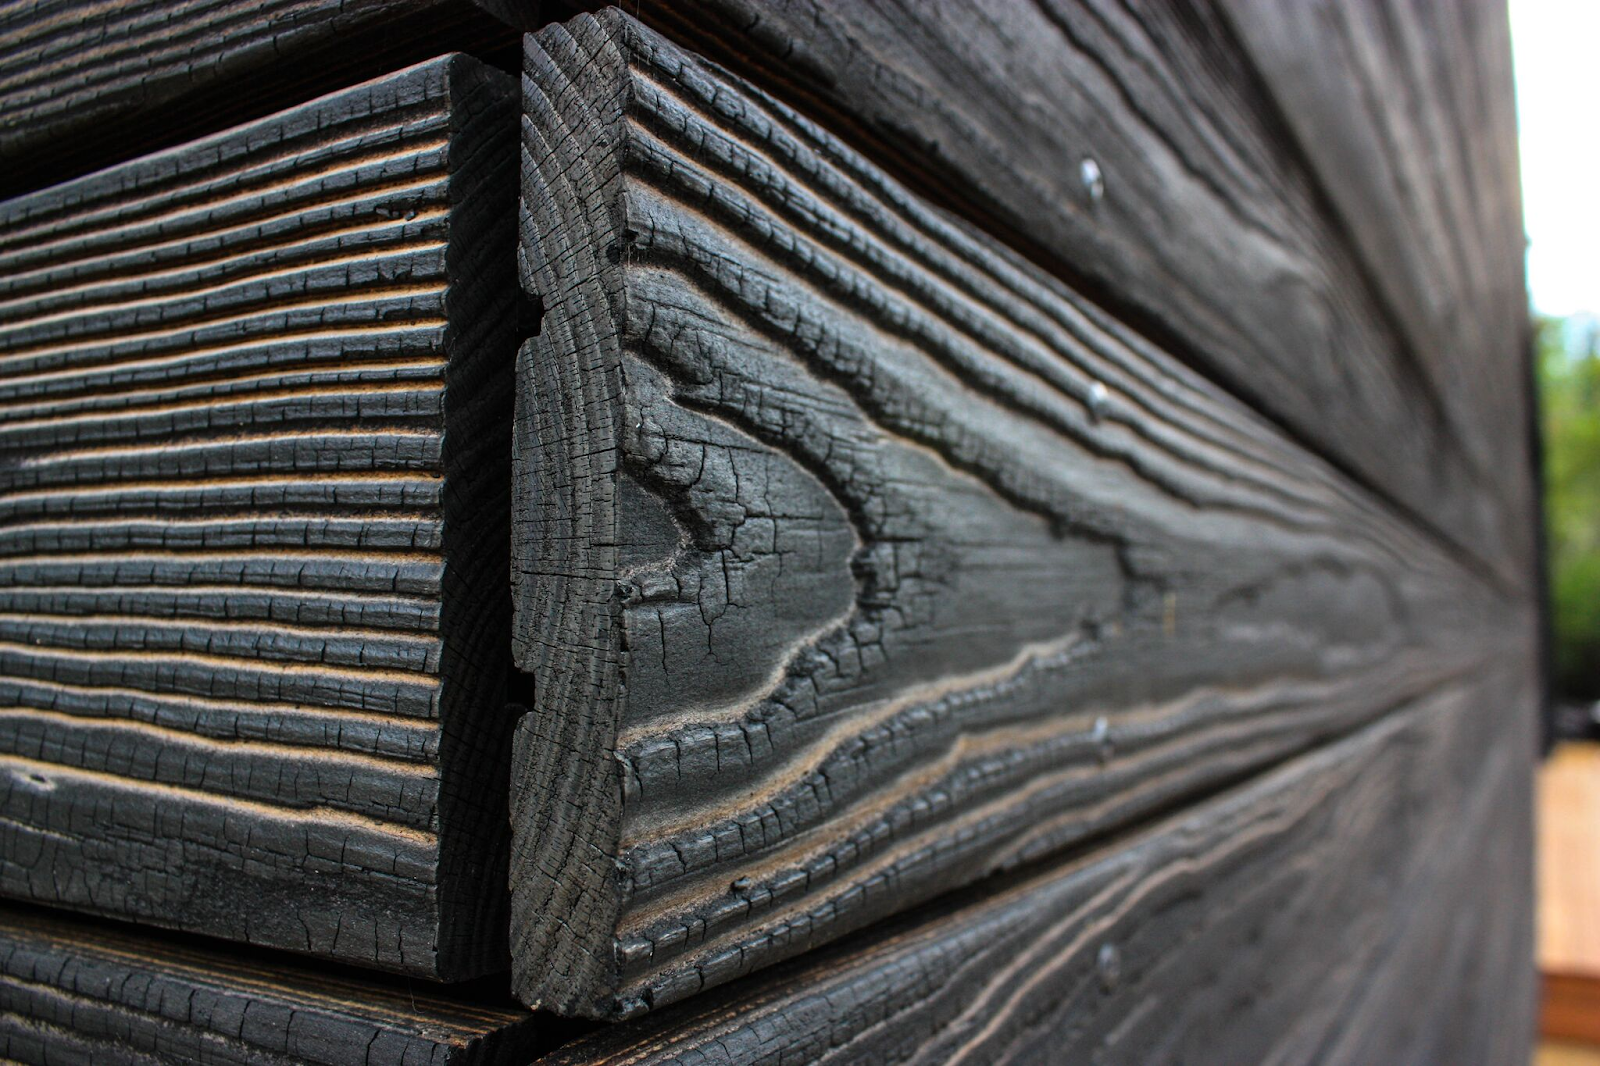 Enhance Your Home With Unique Charred Wood Siding Kebony Charred Wood Siding Charred Wood Shou Sugi Ban